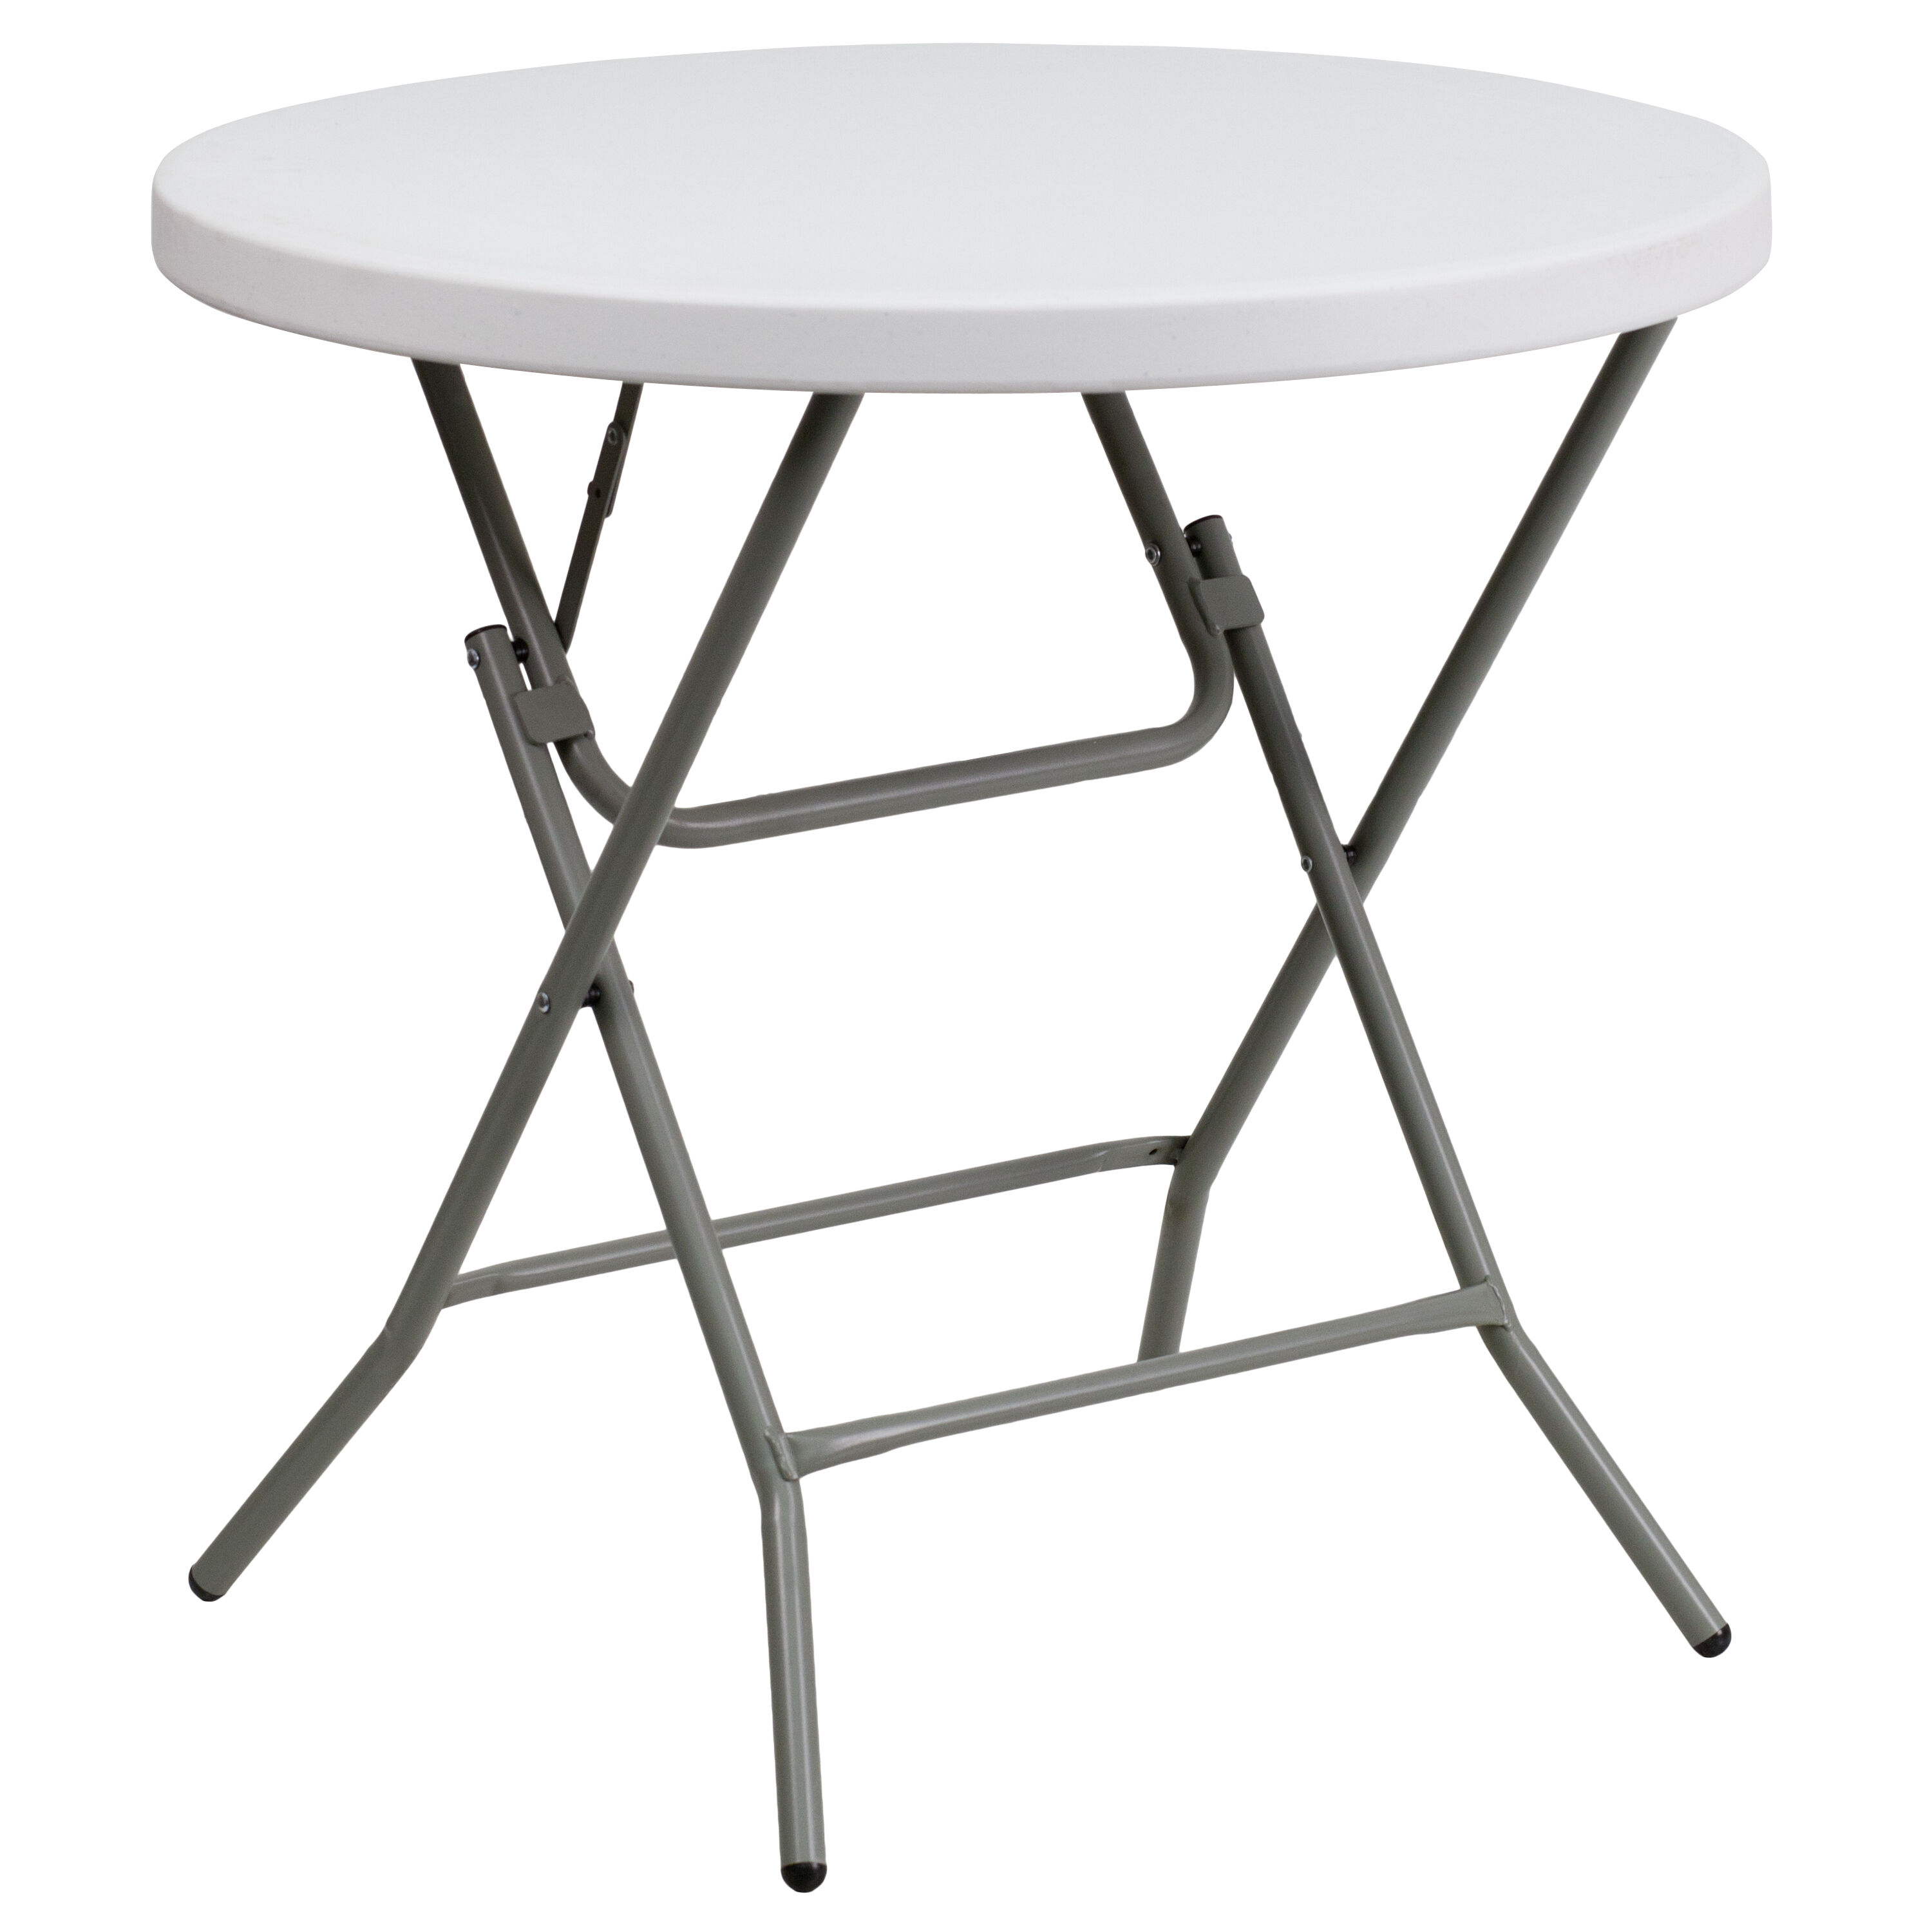 Home & Kitchen Folding Tables Flash Furniture 5 Foot Round